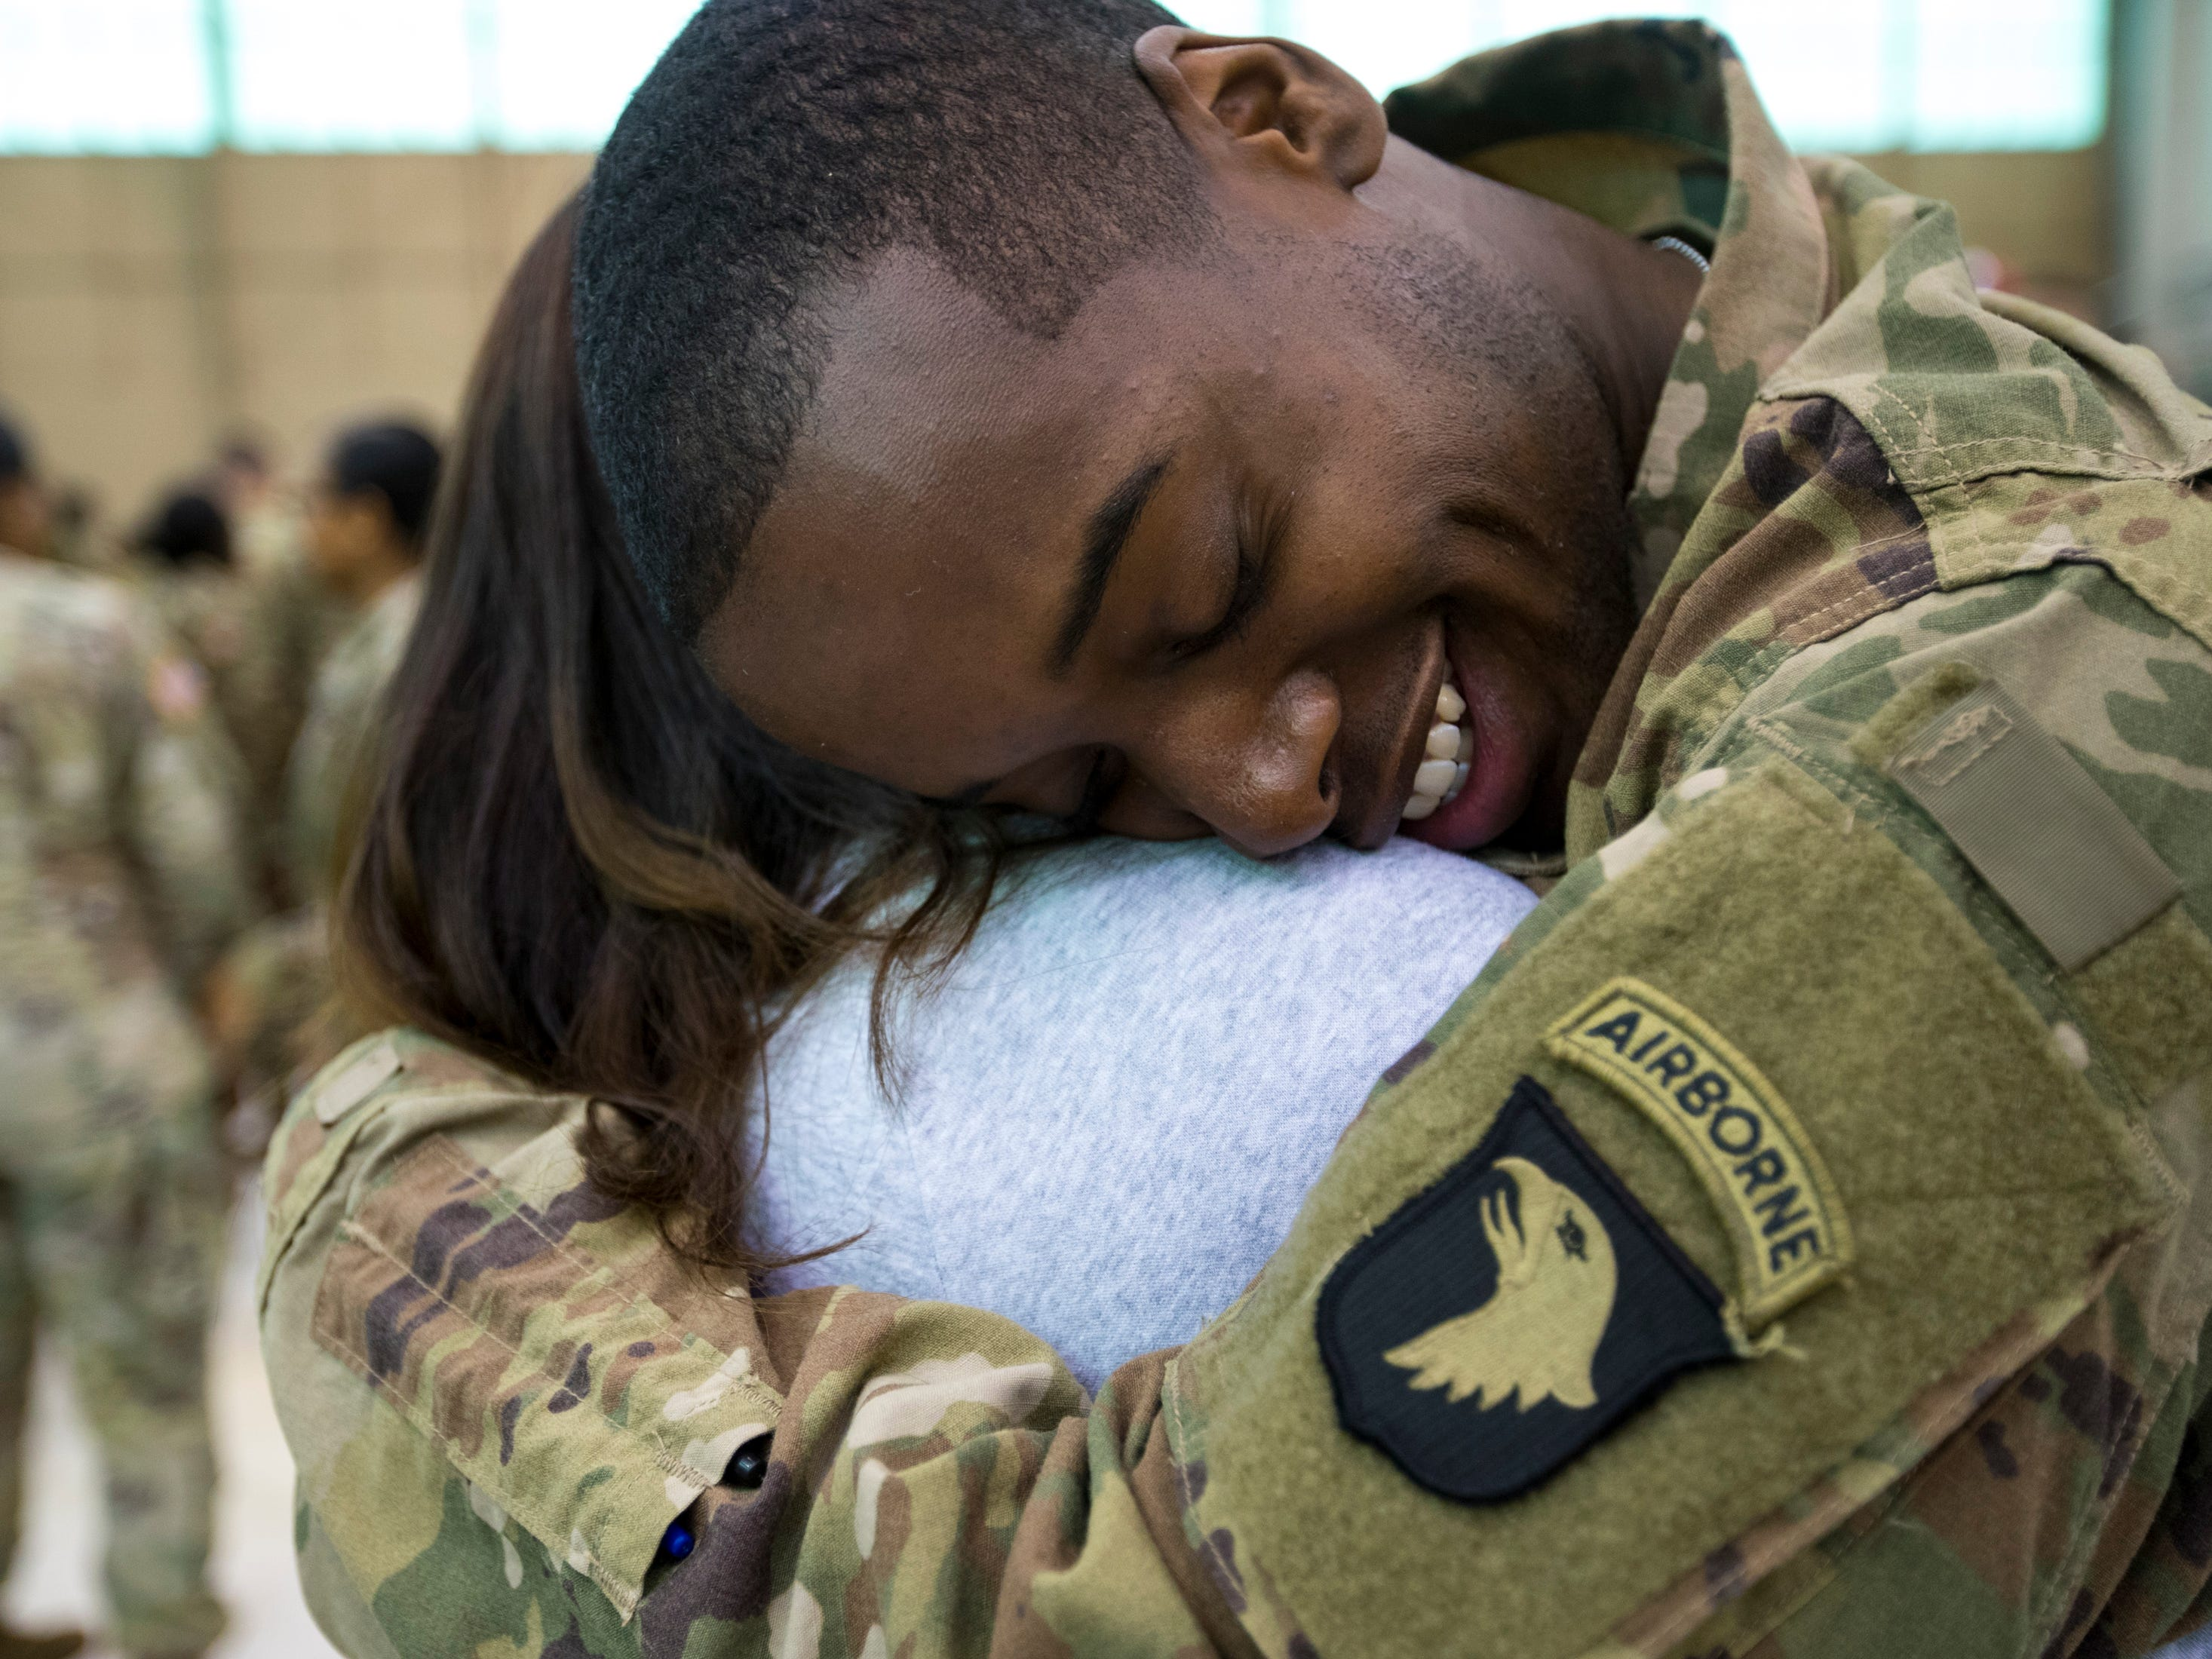 Specialist Kenneth King hugs his girlfriend, Specialist Christel Paloma during the welcome home ceremony for members of the 101st Combat Aviation Brigade at Fort Campbell in Clarksville on Tuesday, Feb. 5, 2019. The soldiers were returning from a nine-month deployment to Afghanistan.